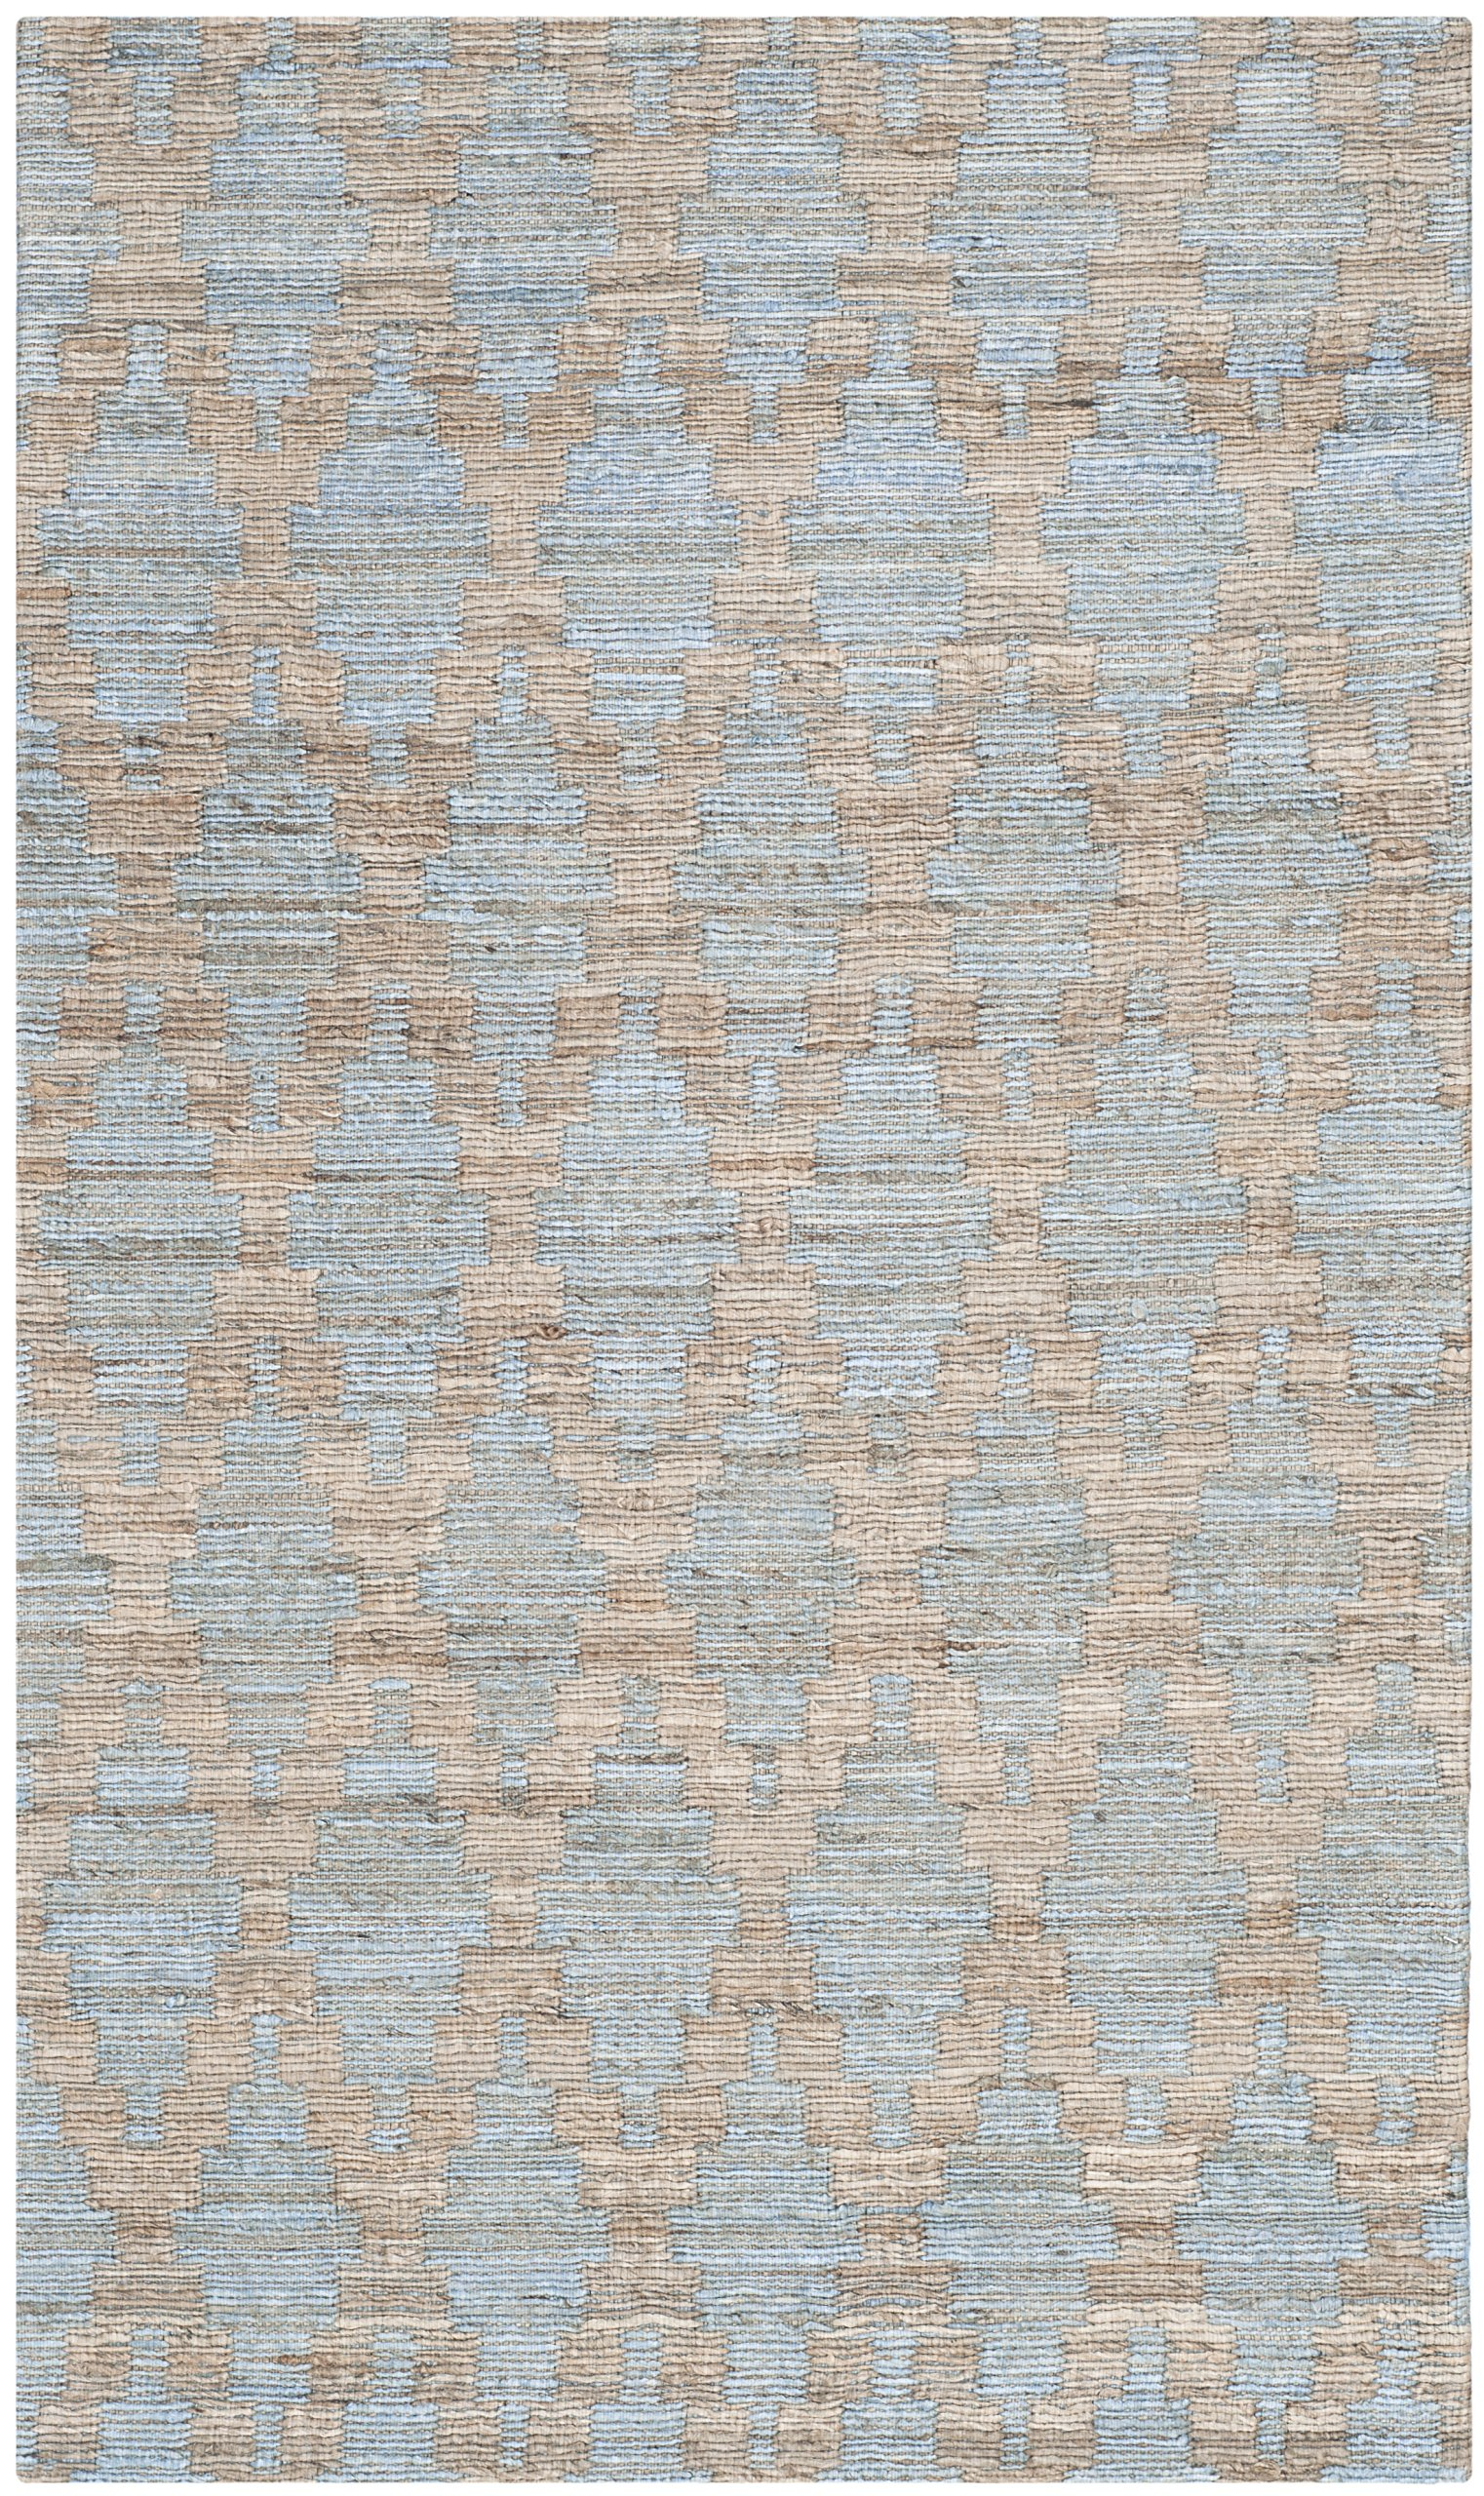 Safavieh Cape Cod Collection CAP413A Hand Woven Geometric Light Blue and Gold Jute and Cotton Area Rug (2' x 3')